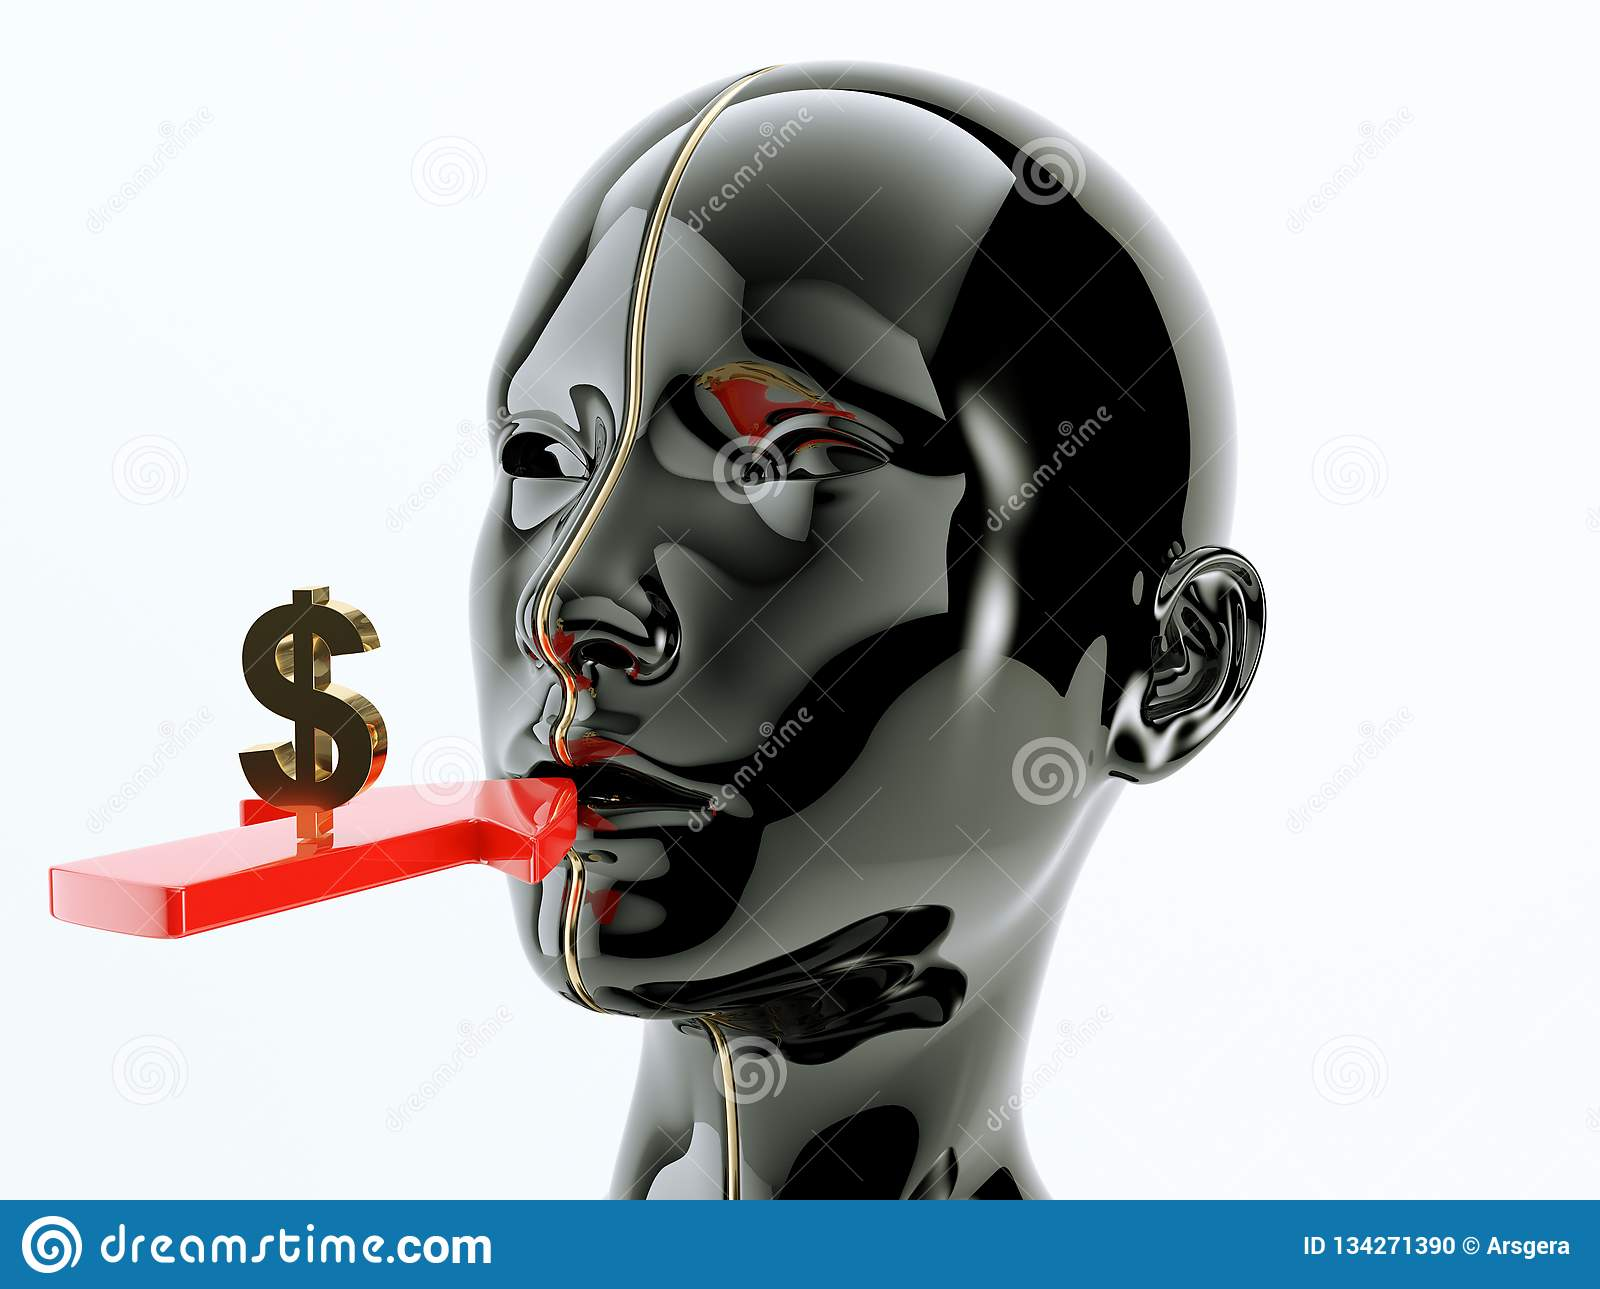 Consumption or consumerism arrow and dollar sign near the mouth